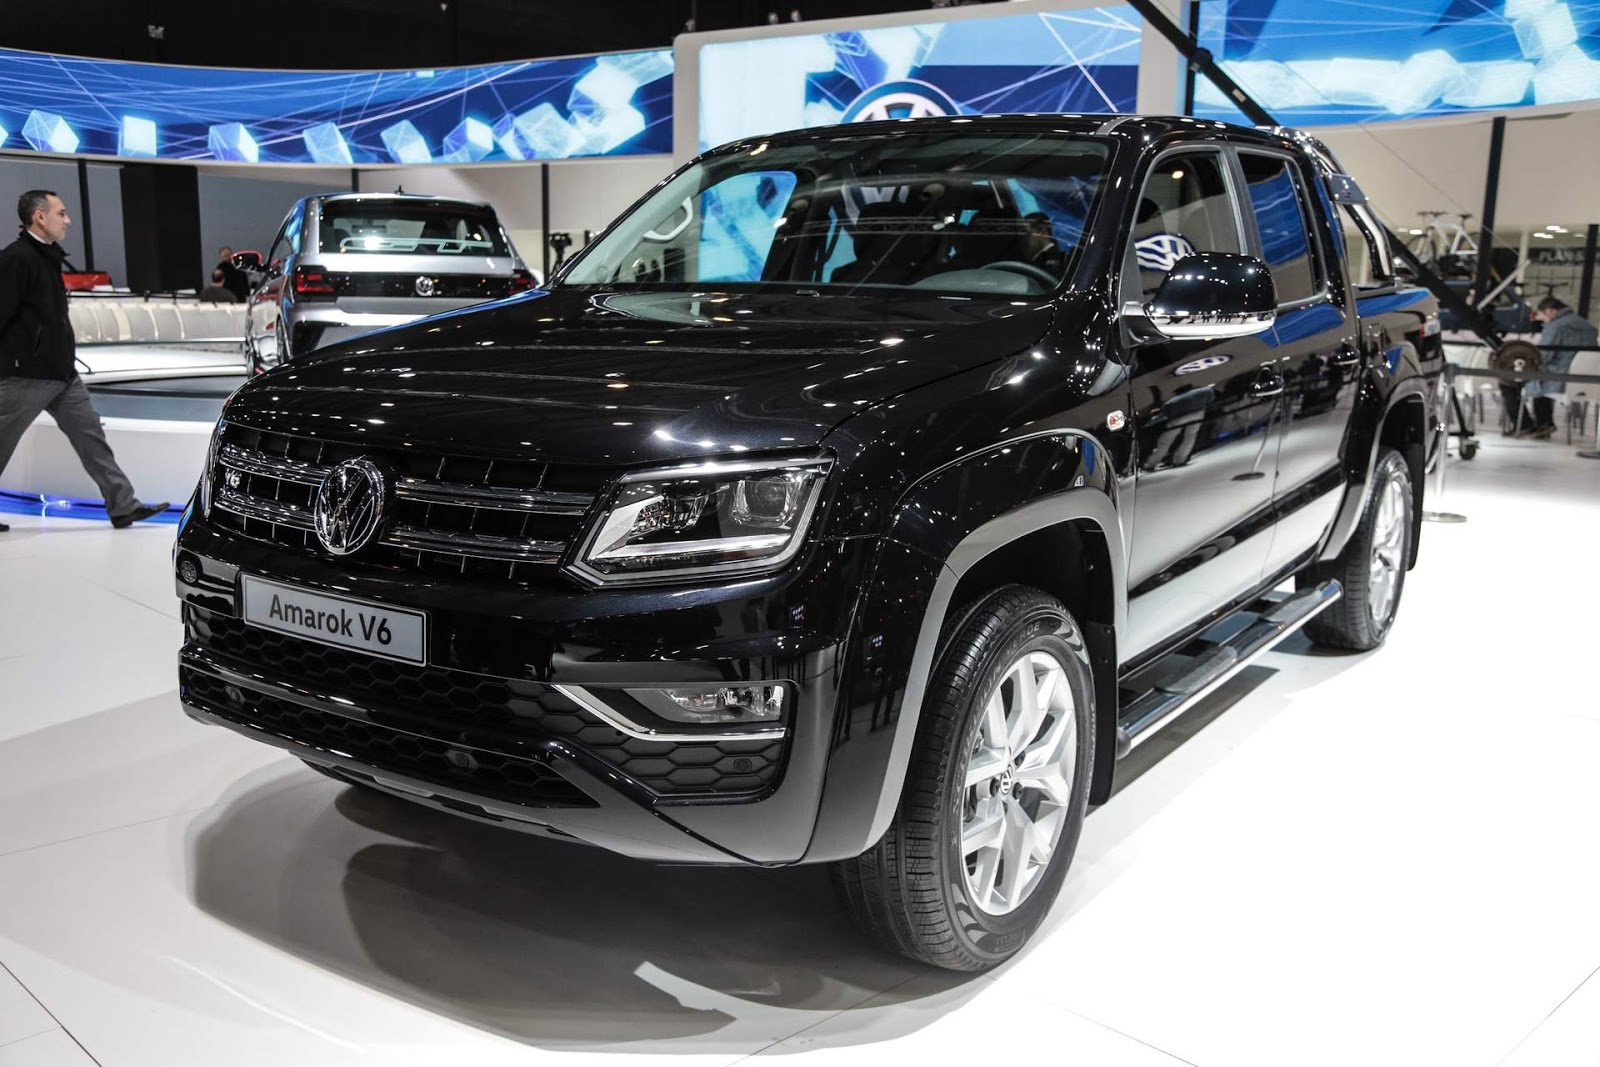 volkswagen amarok v6 pre o r 202 mil argentina car blog br. Black Bedroom Furniture Sets. Home Design Ideas